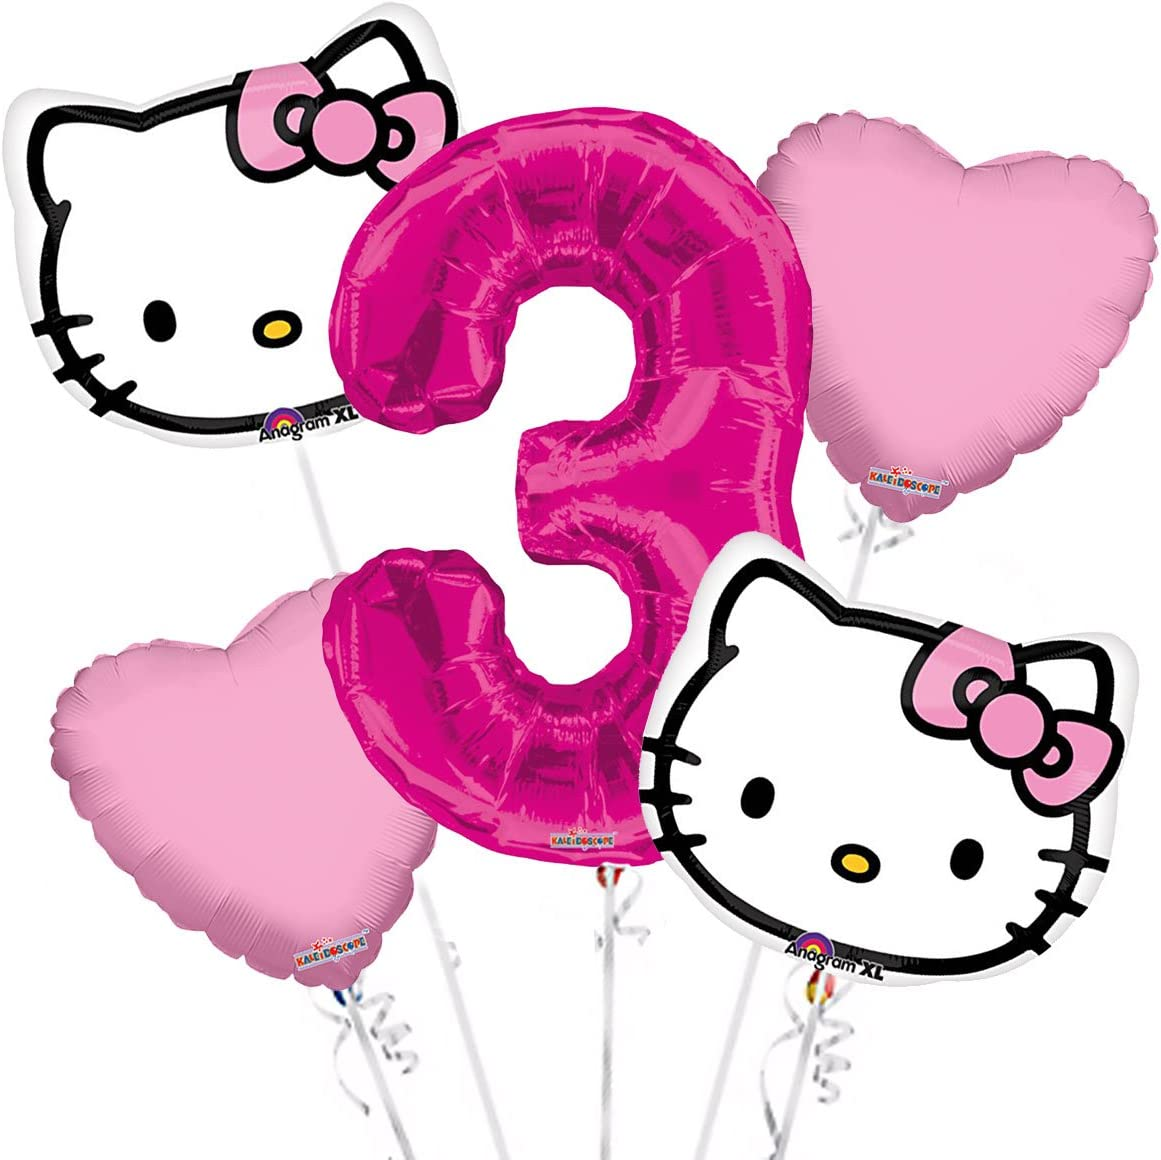 """46/"""" BIG HUGE GIANT HELLO KITTY Helium Foil Balloon Kids Party Decor Party Supply"""